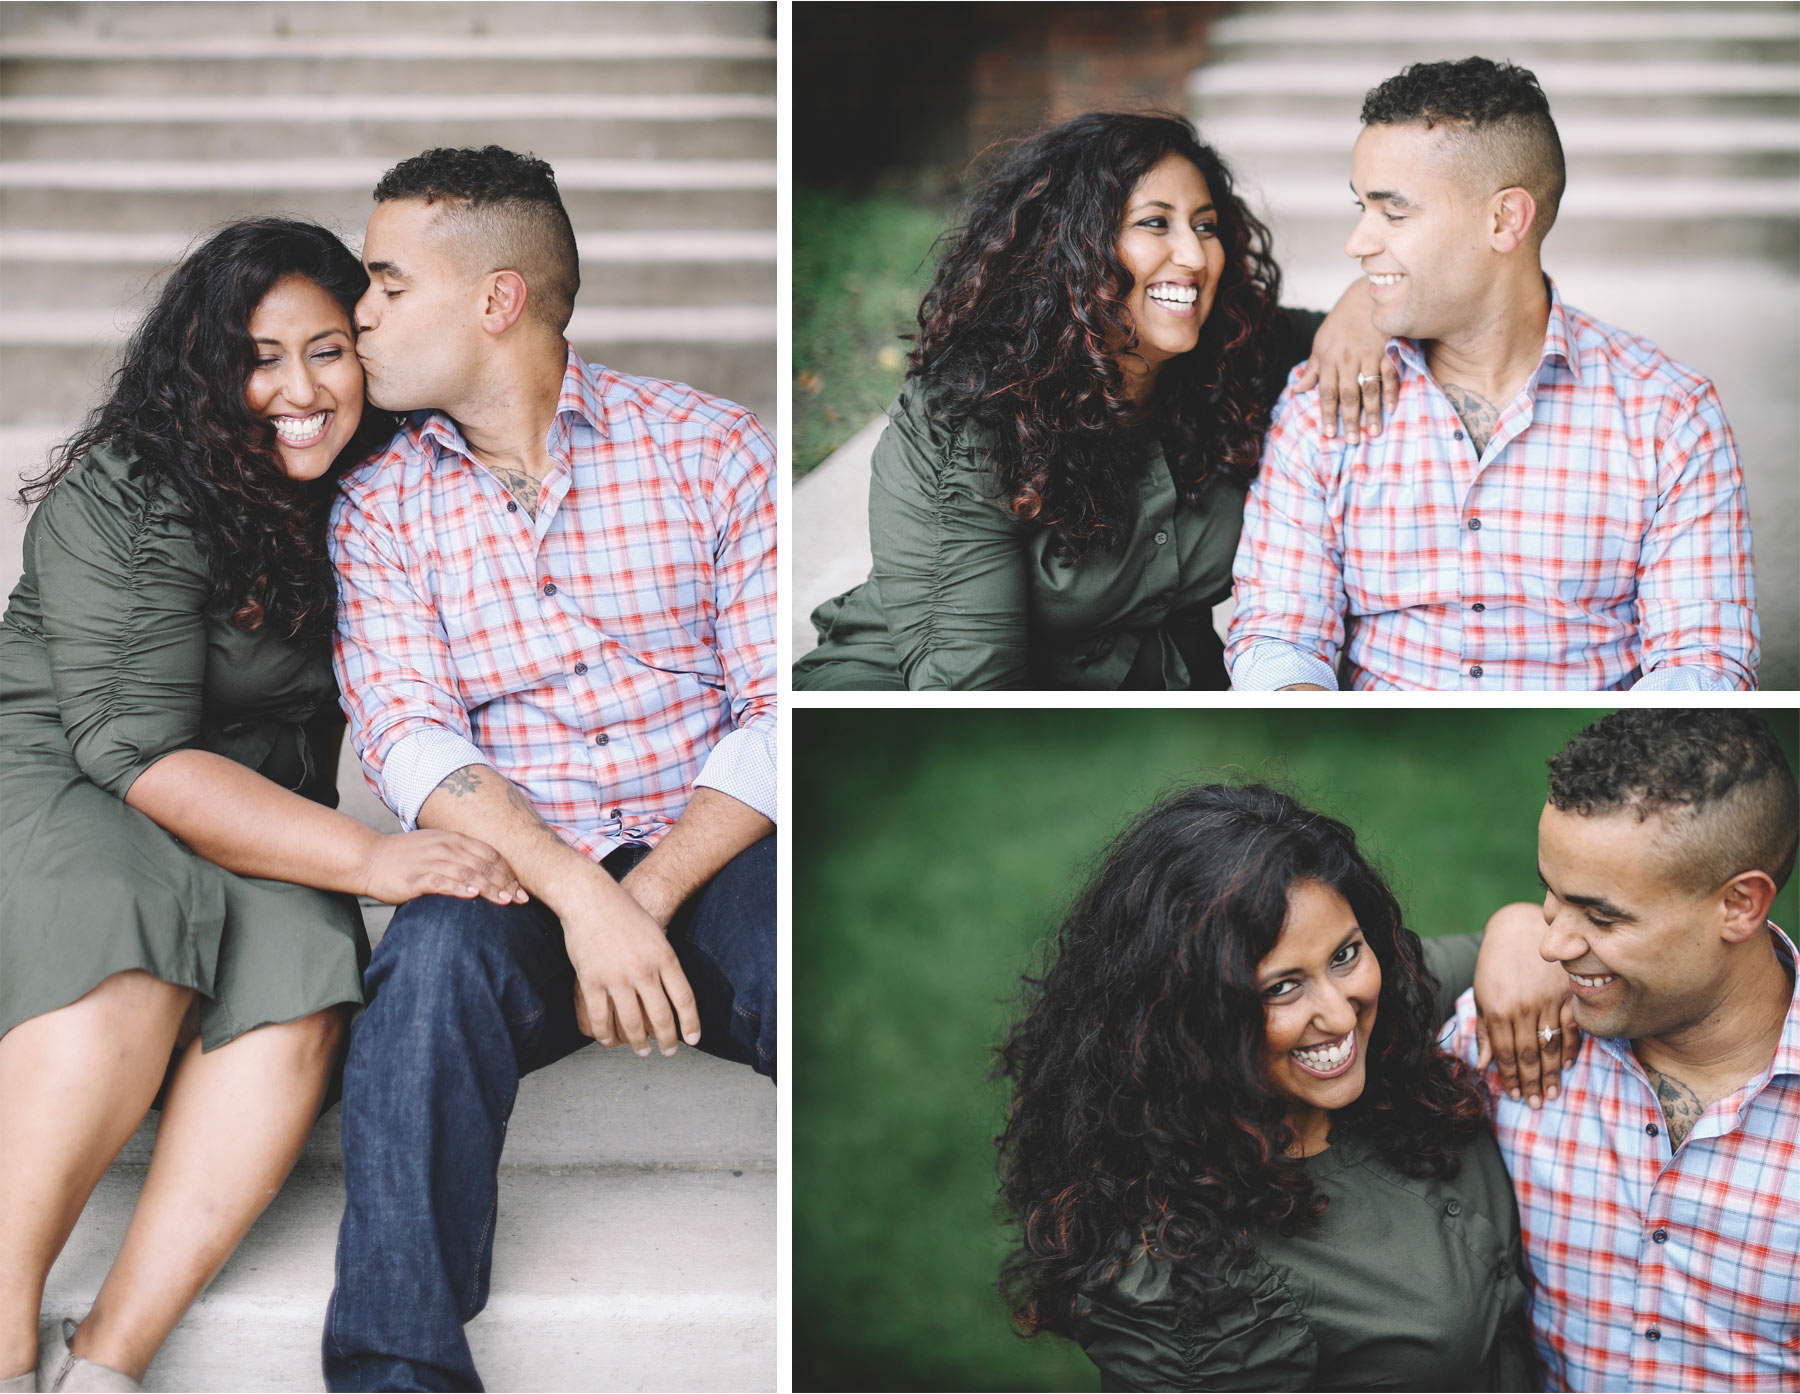 02-Vick-Photography-Get-Aquainted-Session-Engagement-Stairs-Leena-and-Michael.jpg